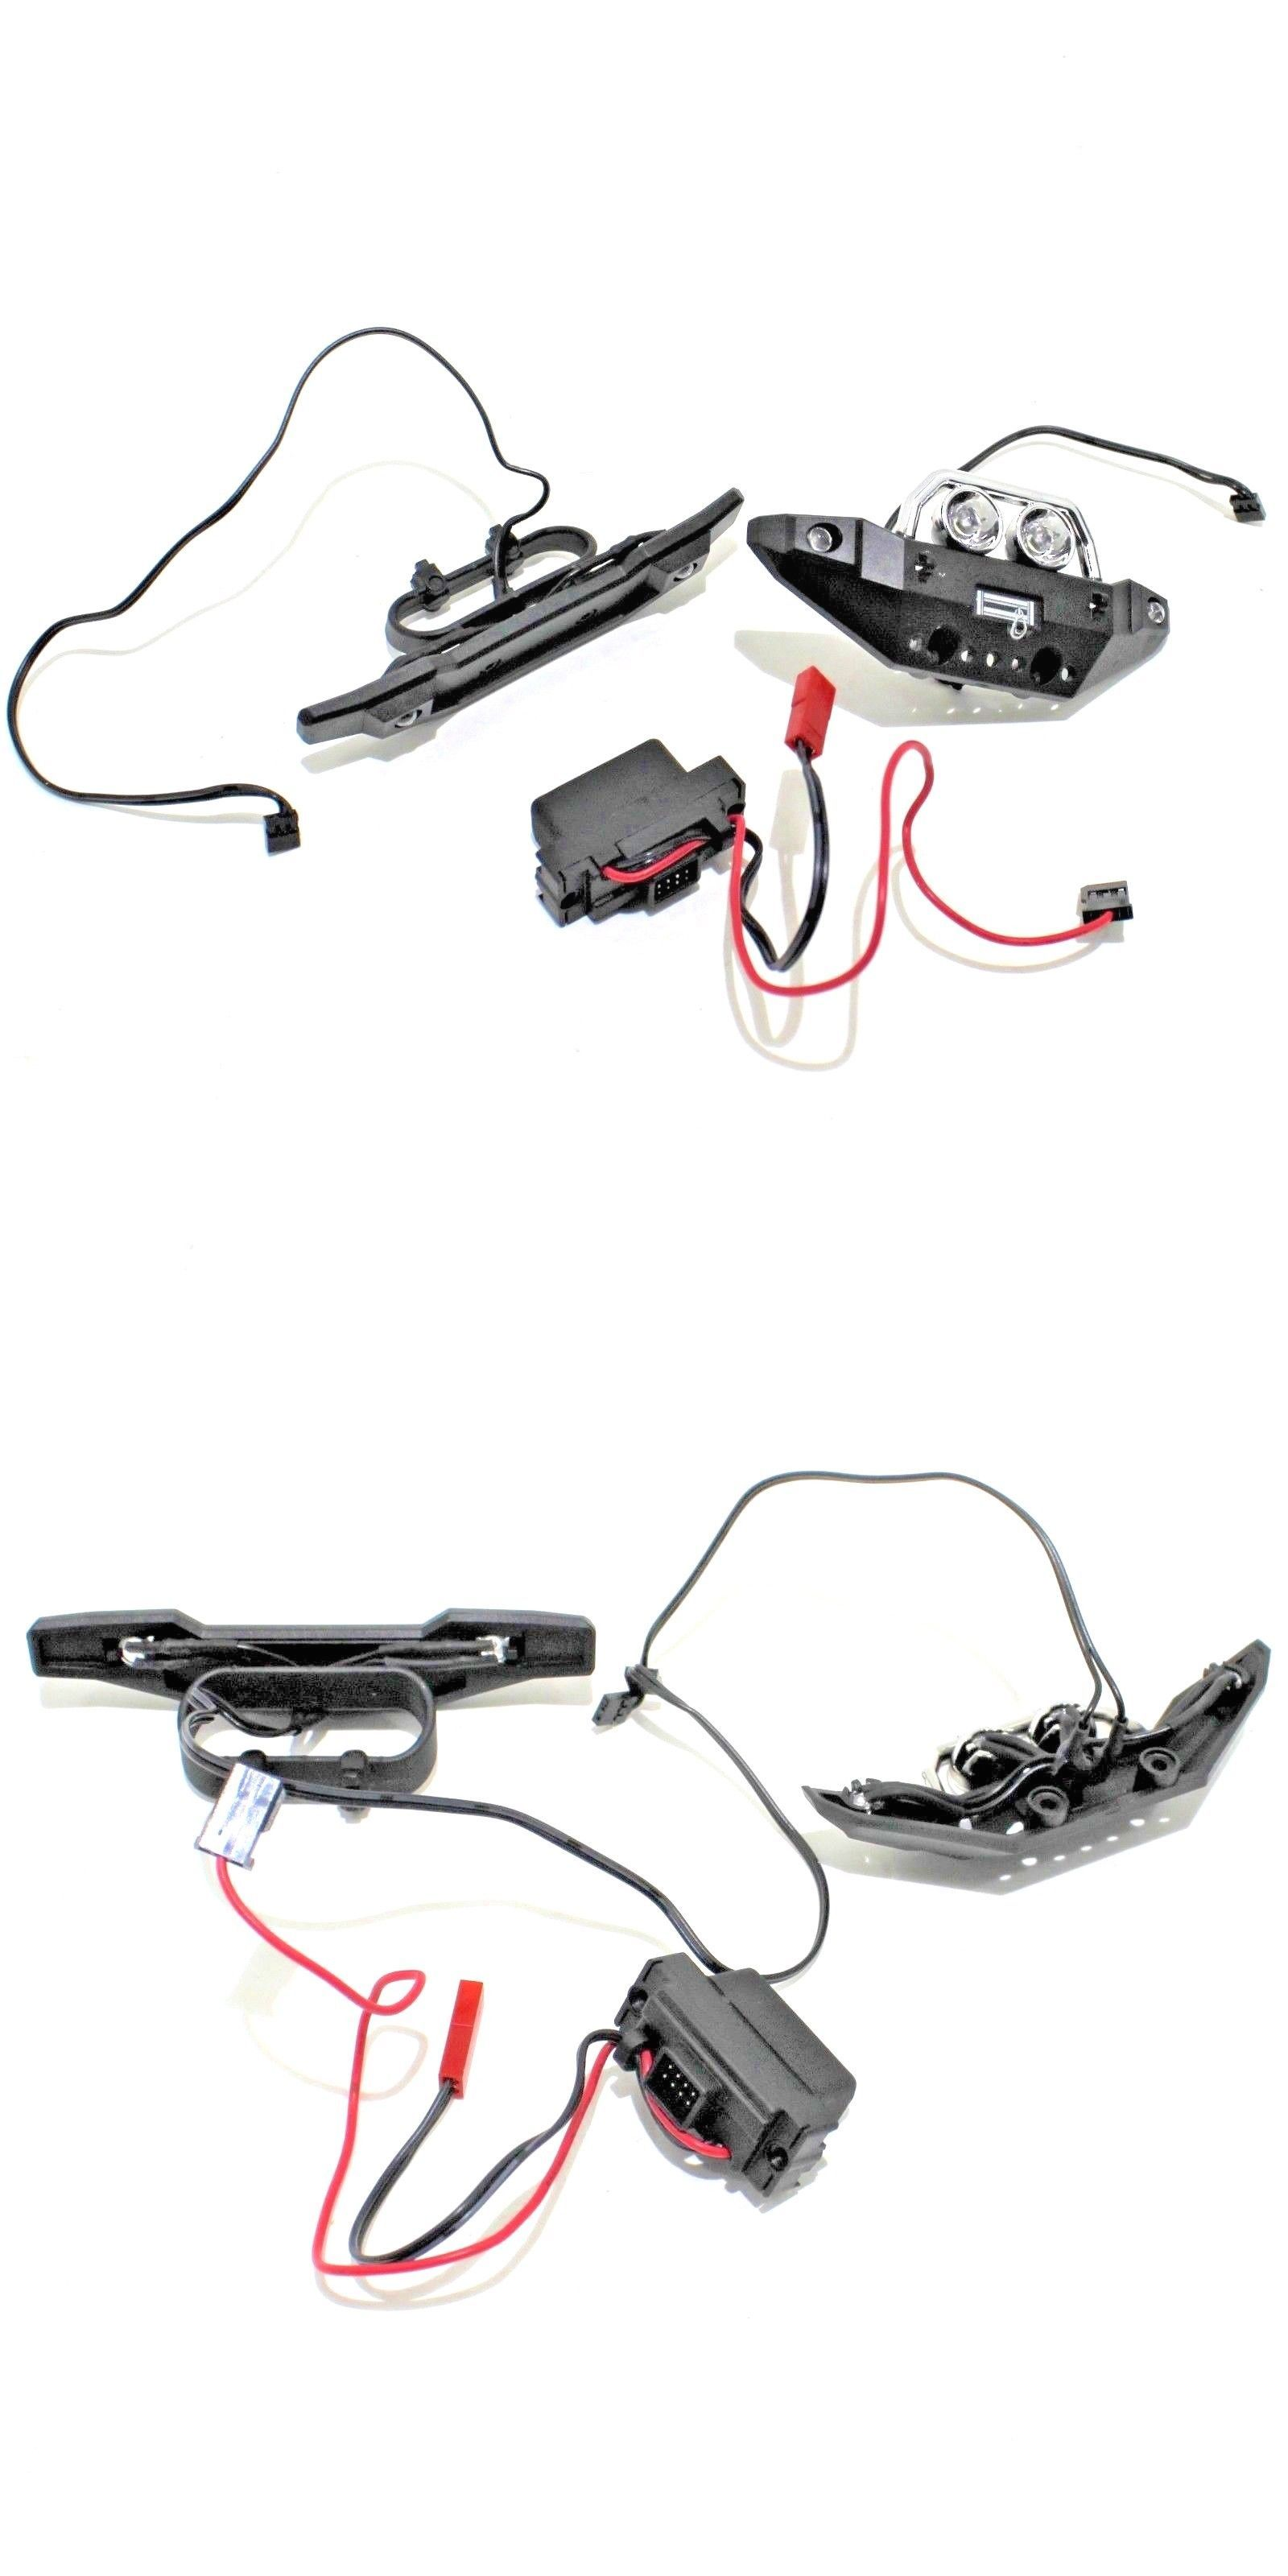 hight resolution of lighting and lamps 182177 traxxas summit 1 16 front rear bumpers led lights wire harness mounts wiring box buy it now only 26 99 on ebay